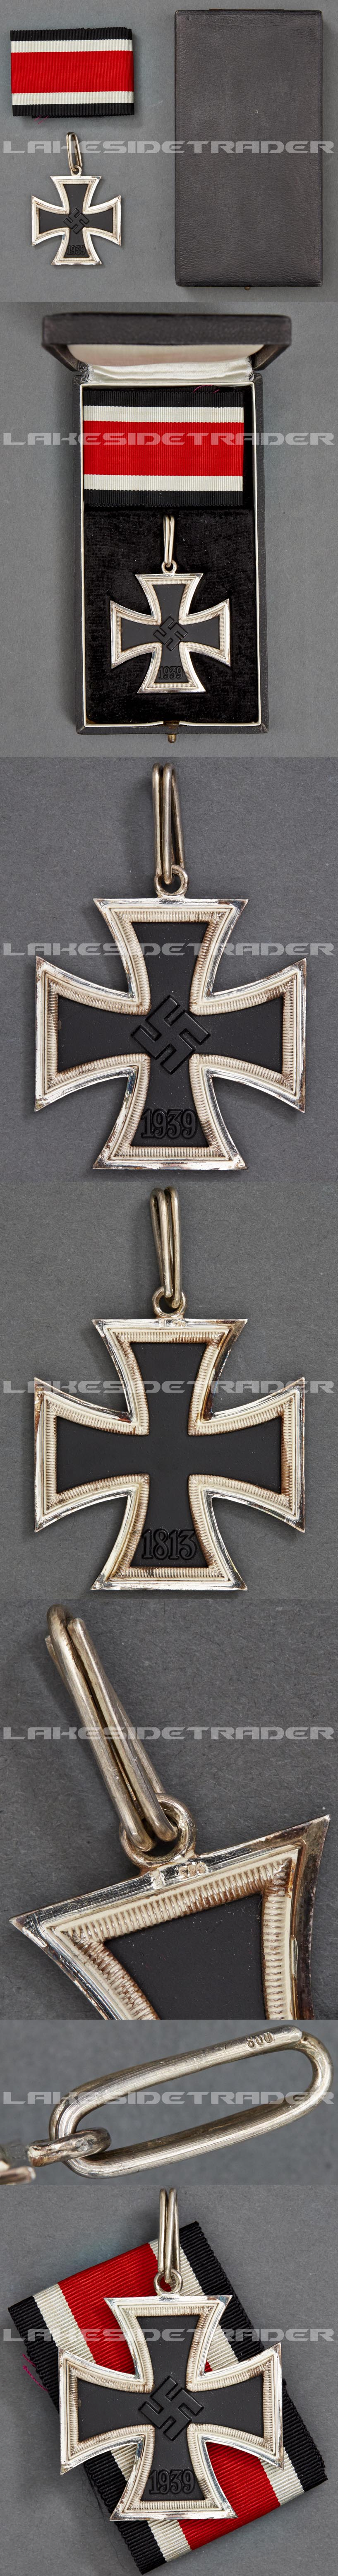 A Knights Cross Iron Cross 1939 by Steinhauer & Luck in its Original Case